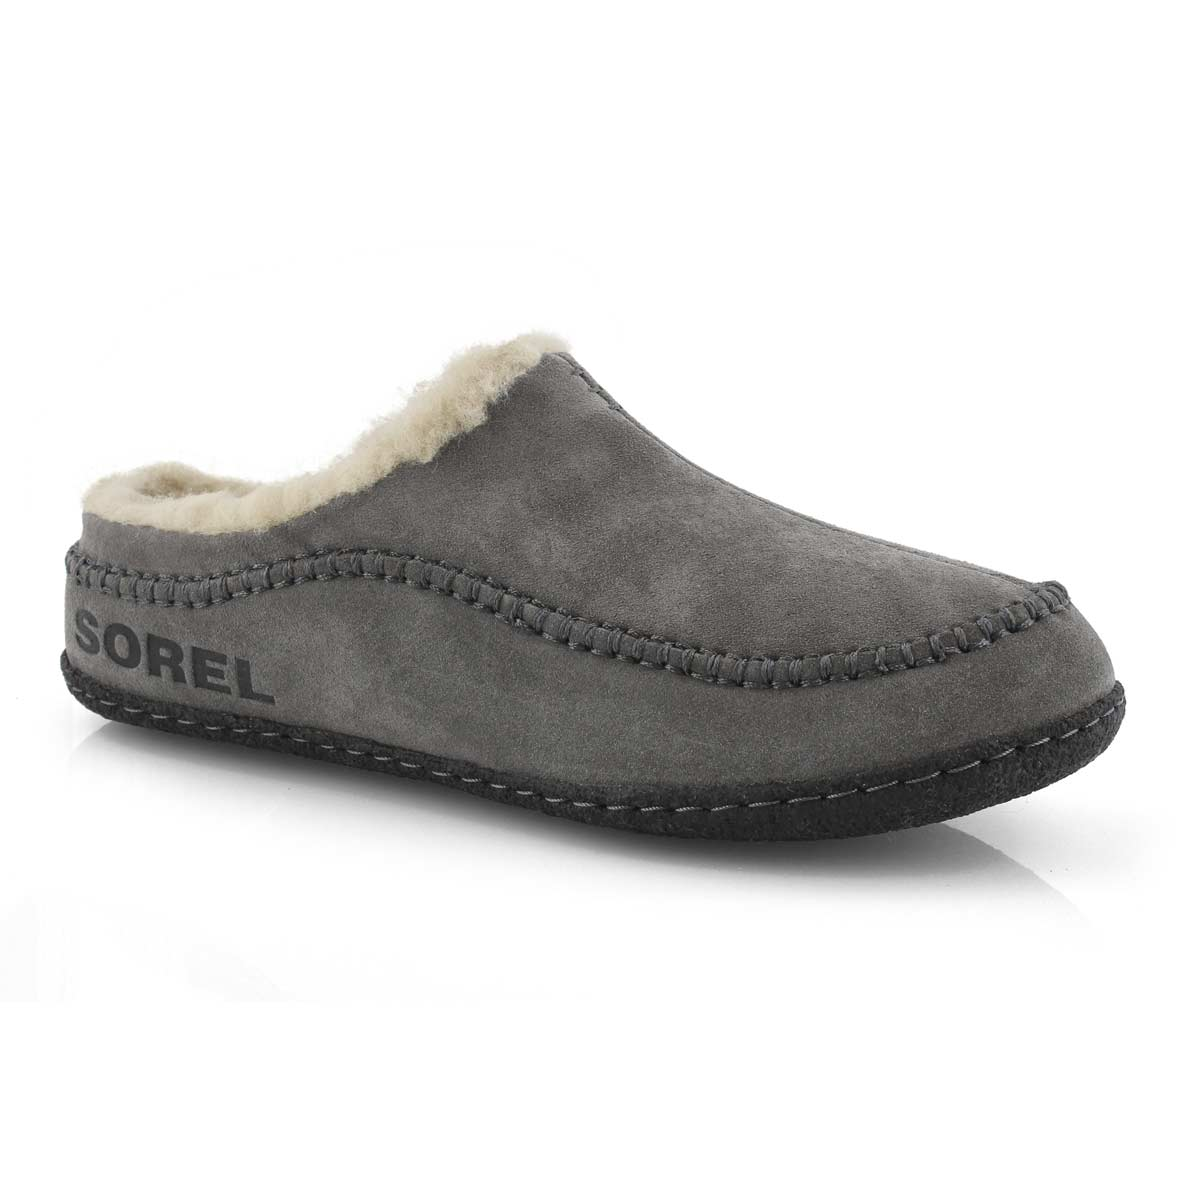 Mns Falcon Ridge II quarry slipper